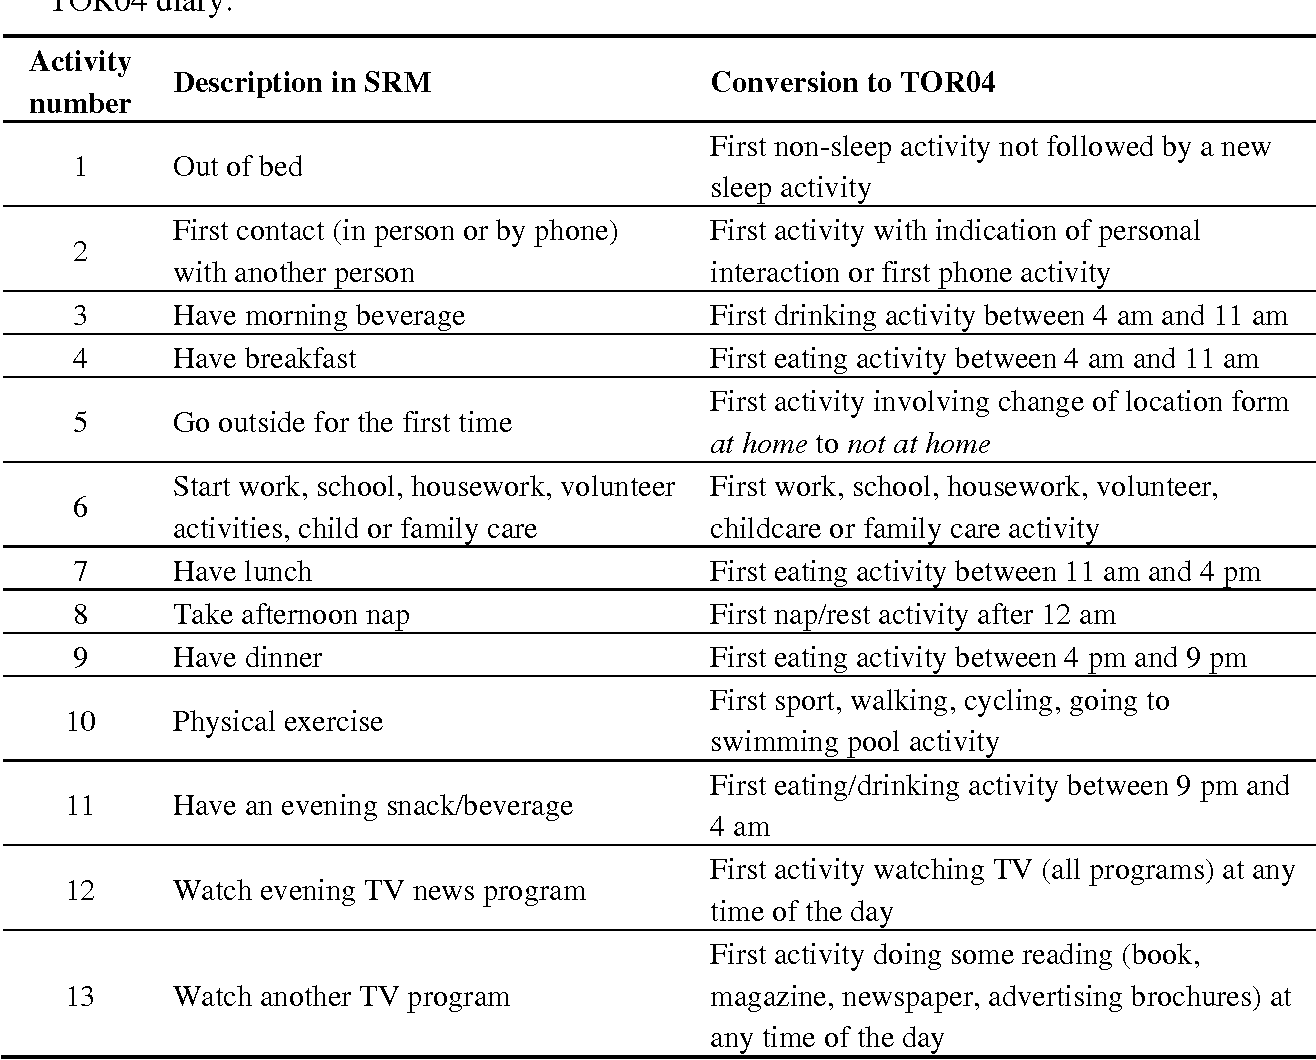 Table 2 from Calculating the Social Rhythm Metric (SRM) and